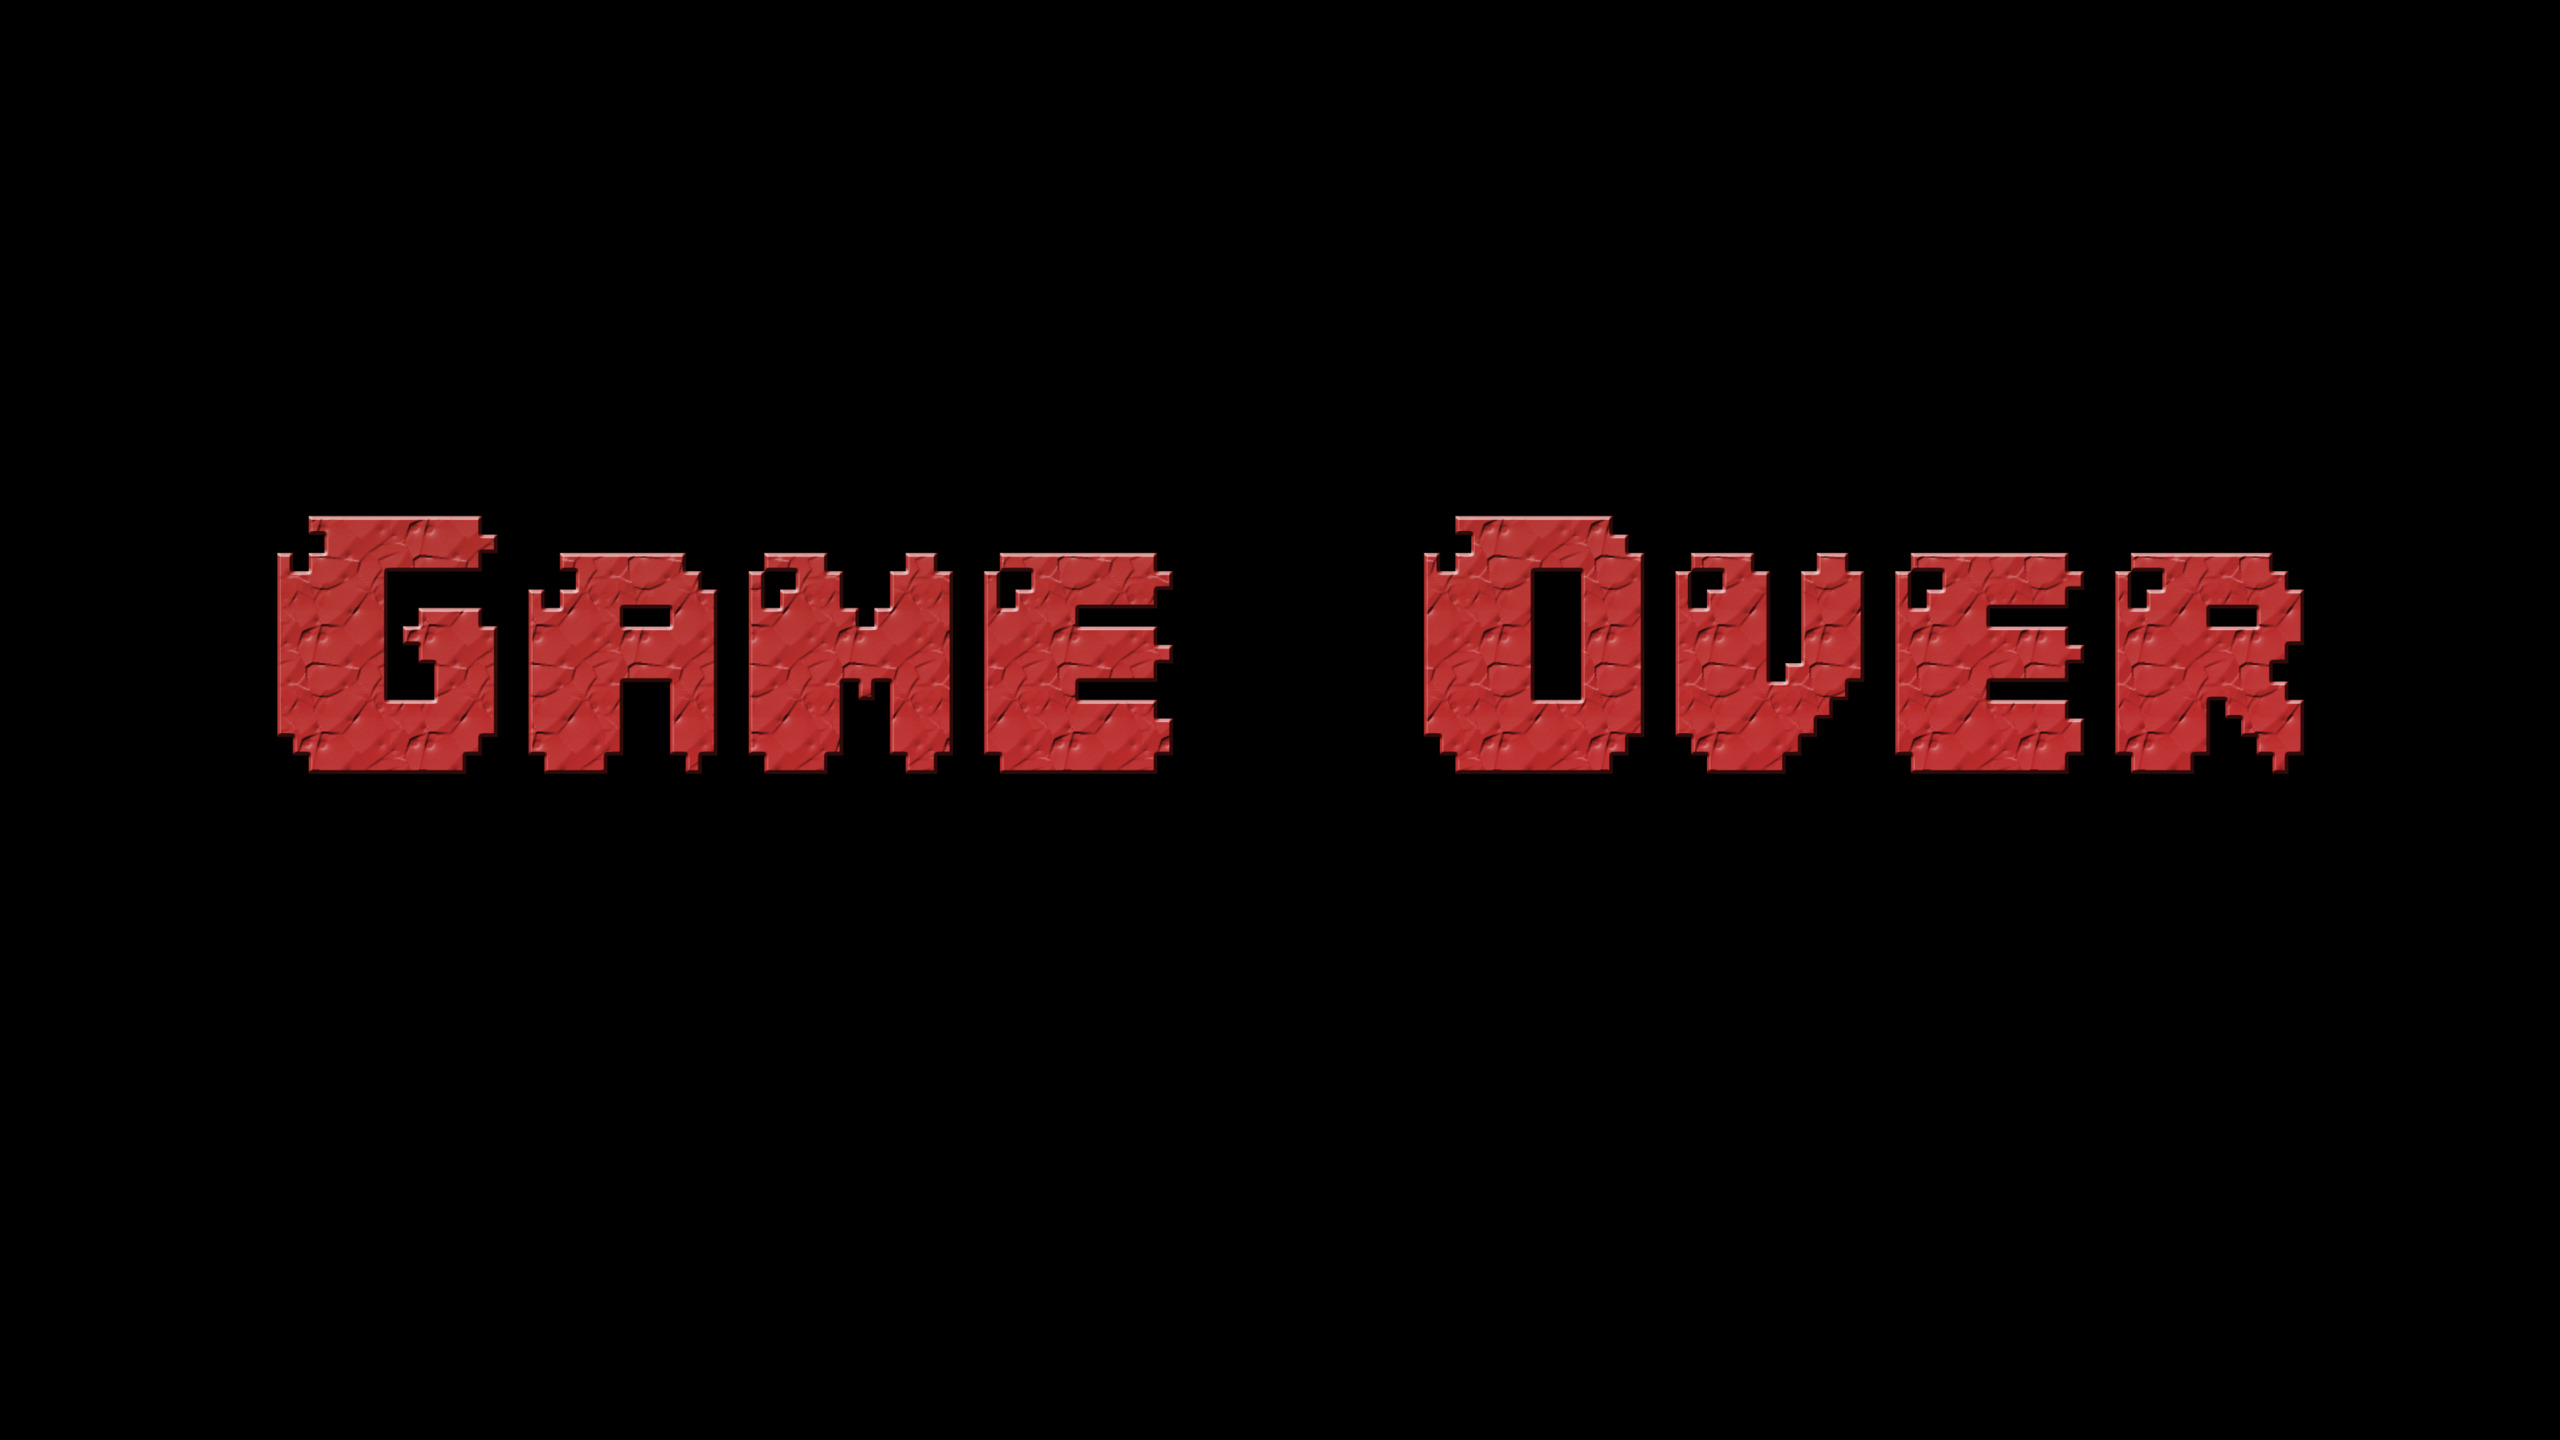 2560x1440 game over typography 1440p resolution hd 4k